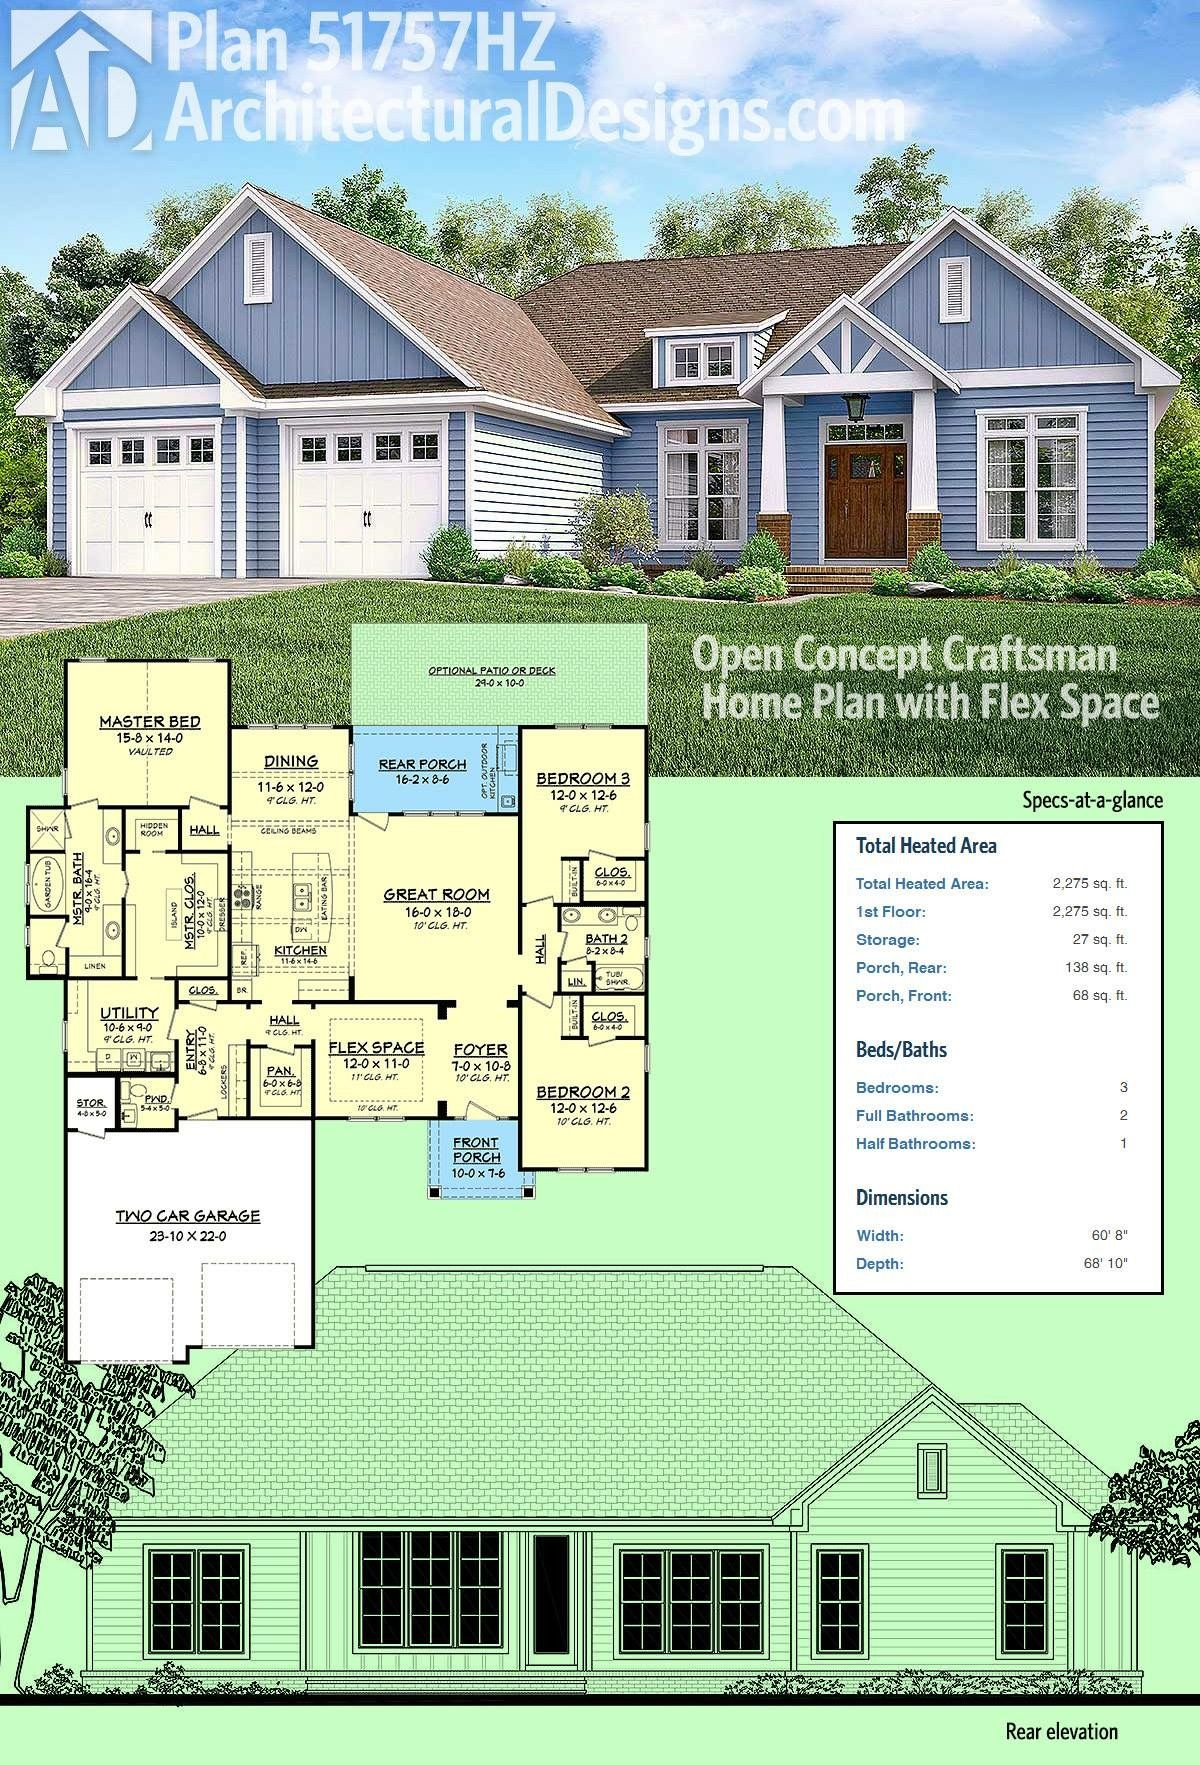 Plan 51757hz Open Concept Craftsman Home Plan With Flex Space Craftsman House Plans House Plans Dream House Plans